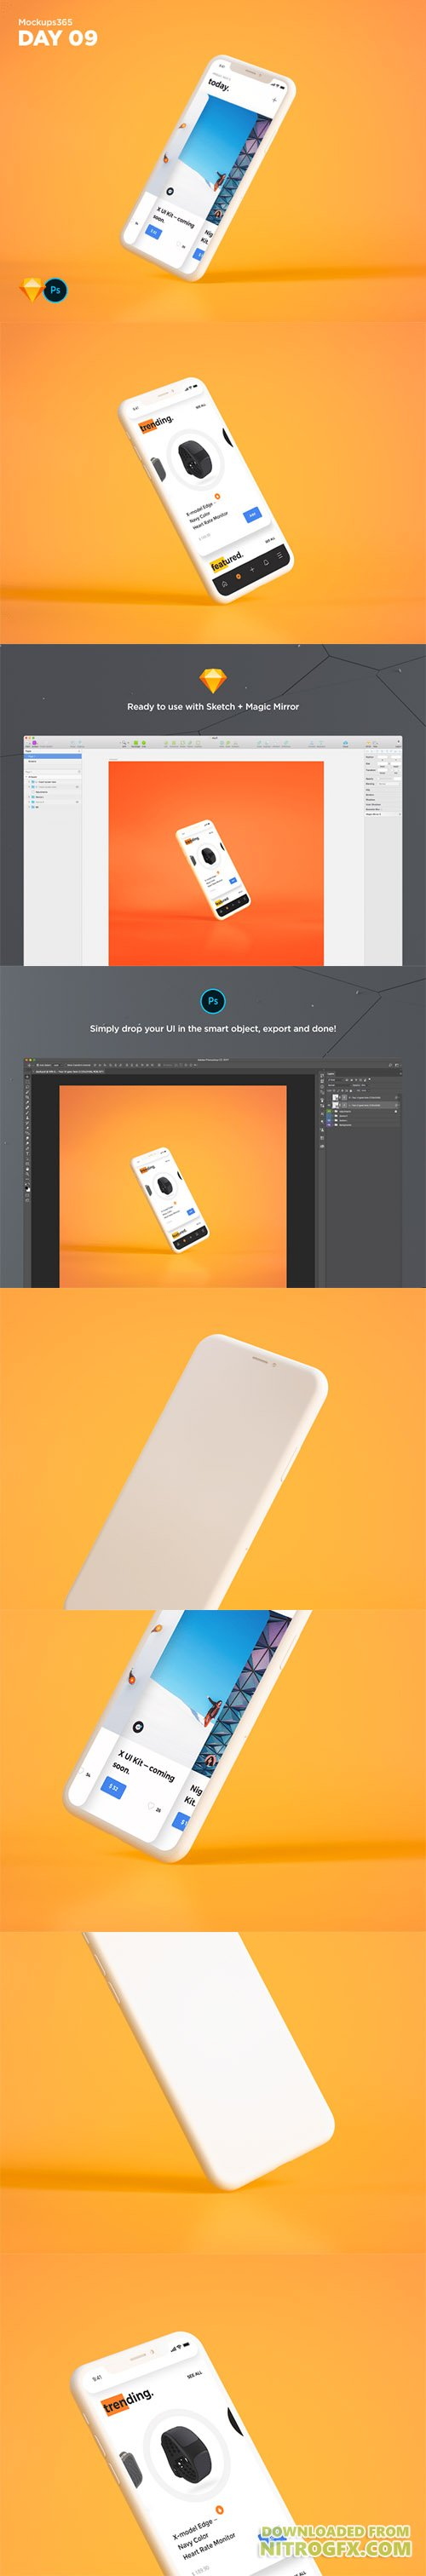 Mockups365: Day 9 - 2 White iPhone X angled mockups for Sketch & Photoshop